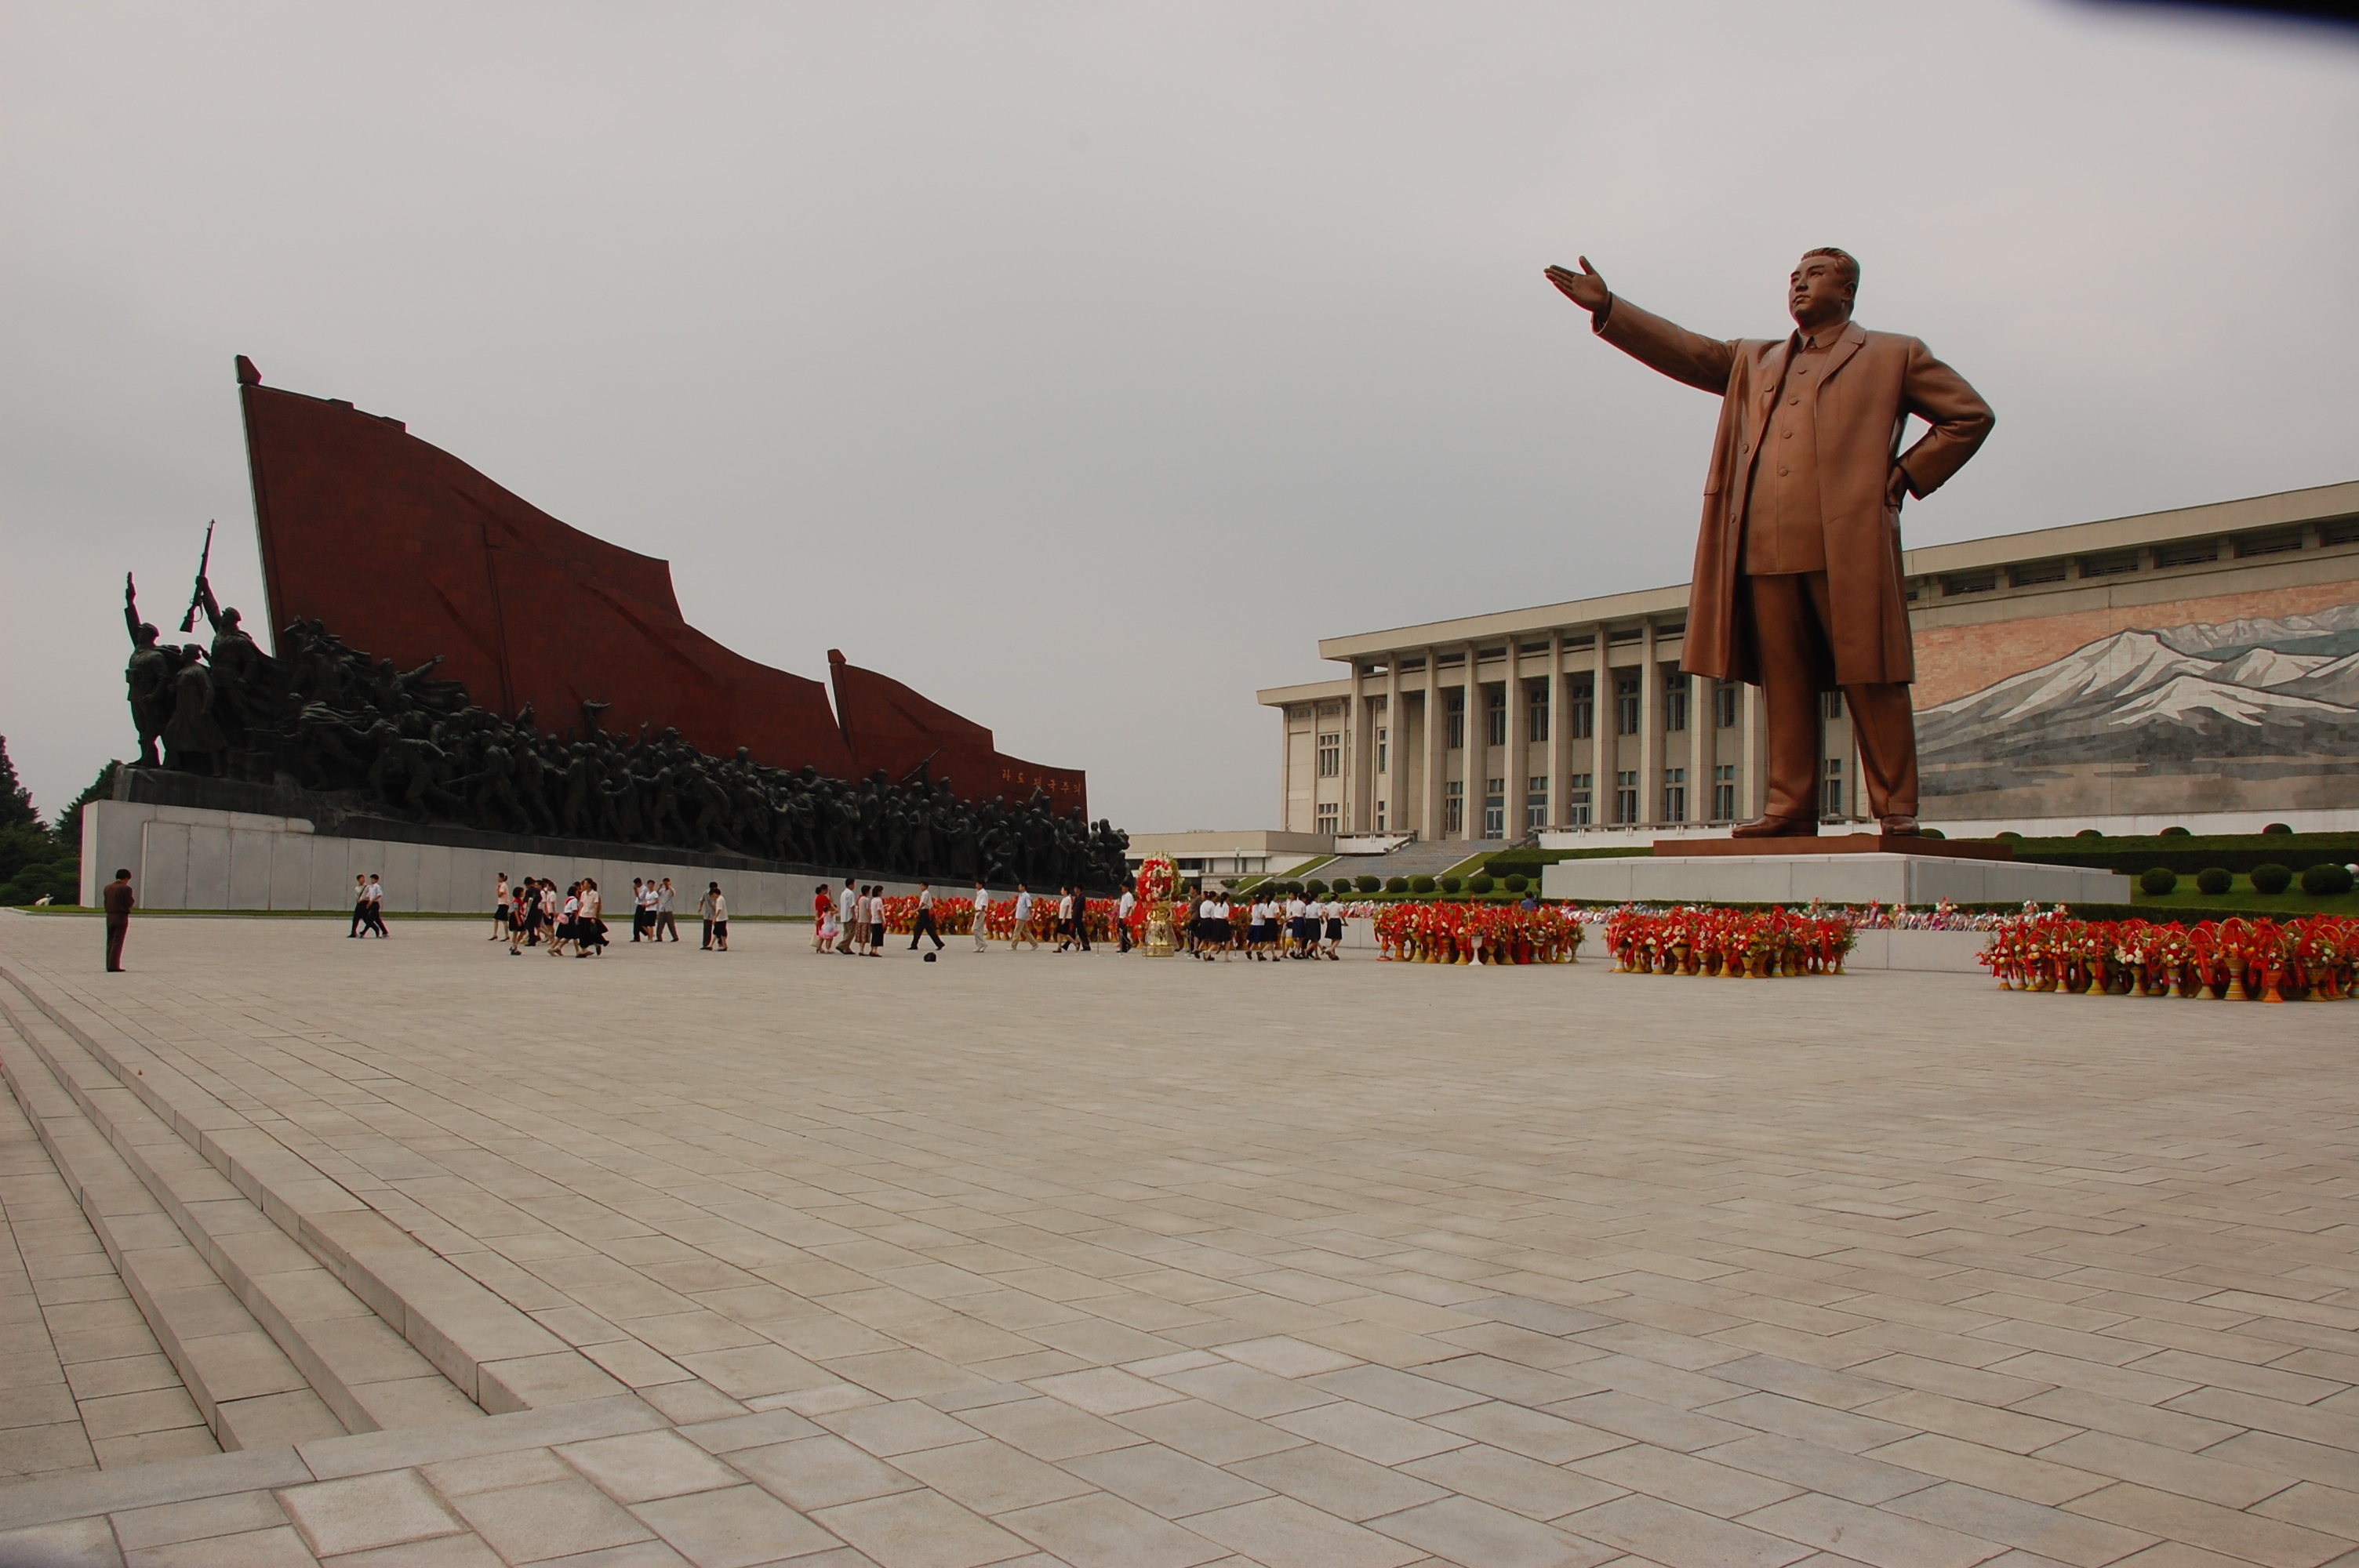 1026976538 cdbc7e7209 o In North Korea, You Can Buy 2 Pounds Of Weed For $4.30... But Theres a Catch